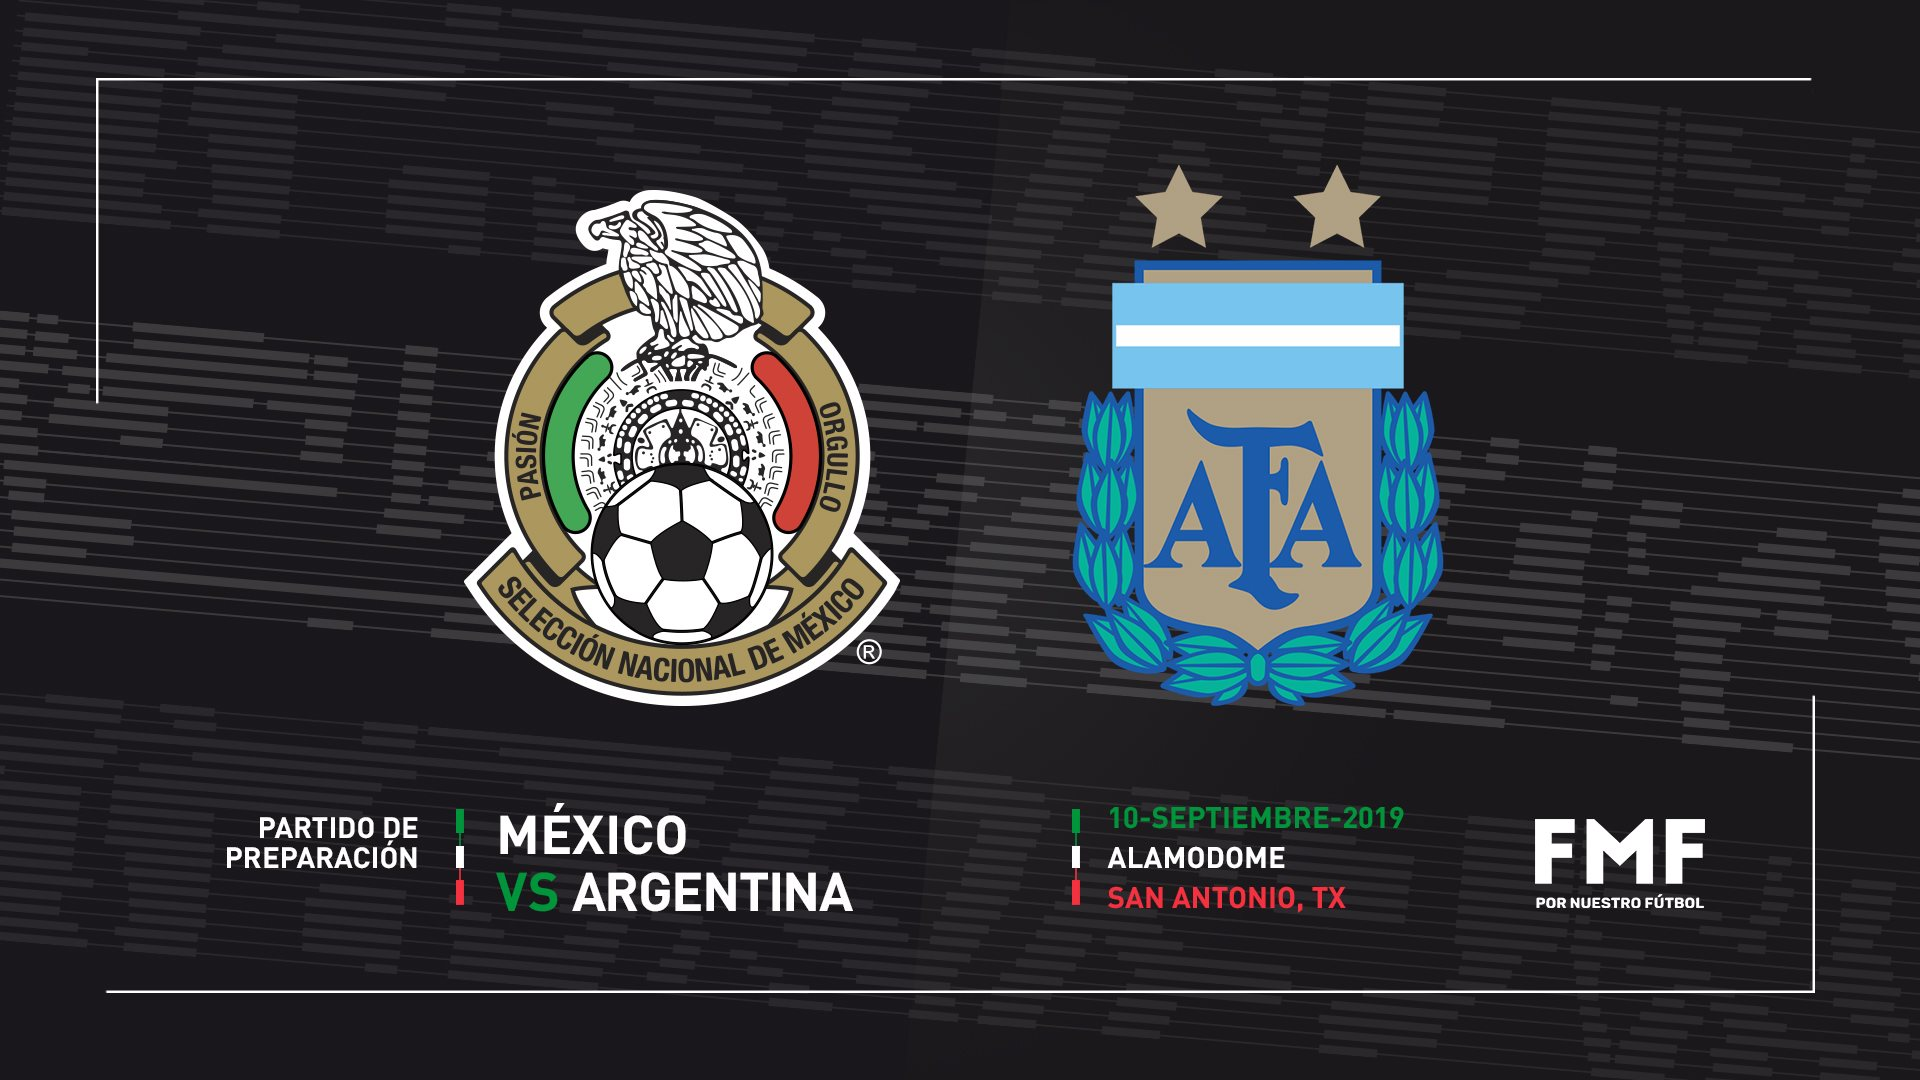 Powerhouse Argentina To Battle Mexican National Team At San